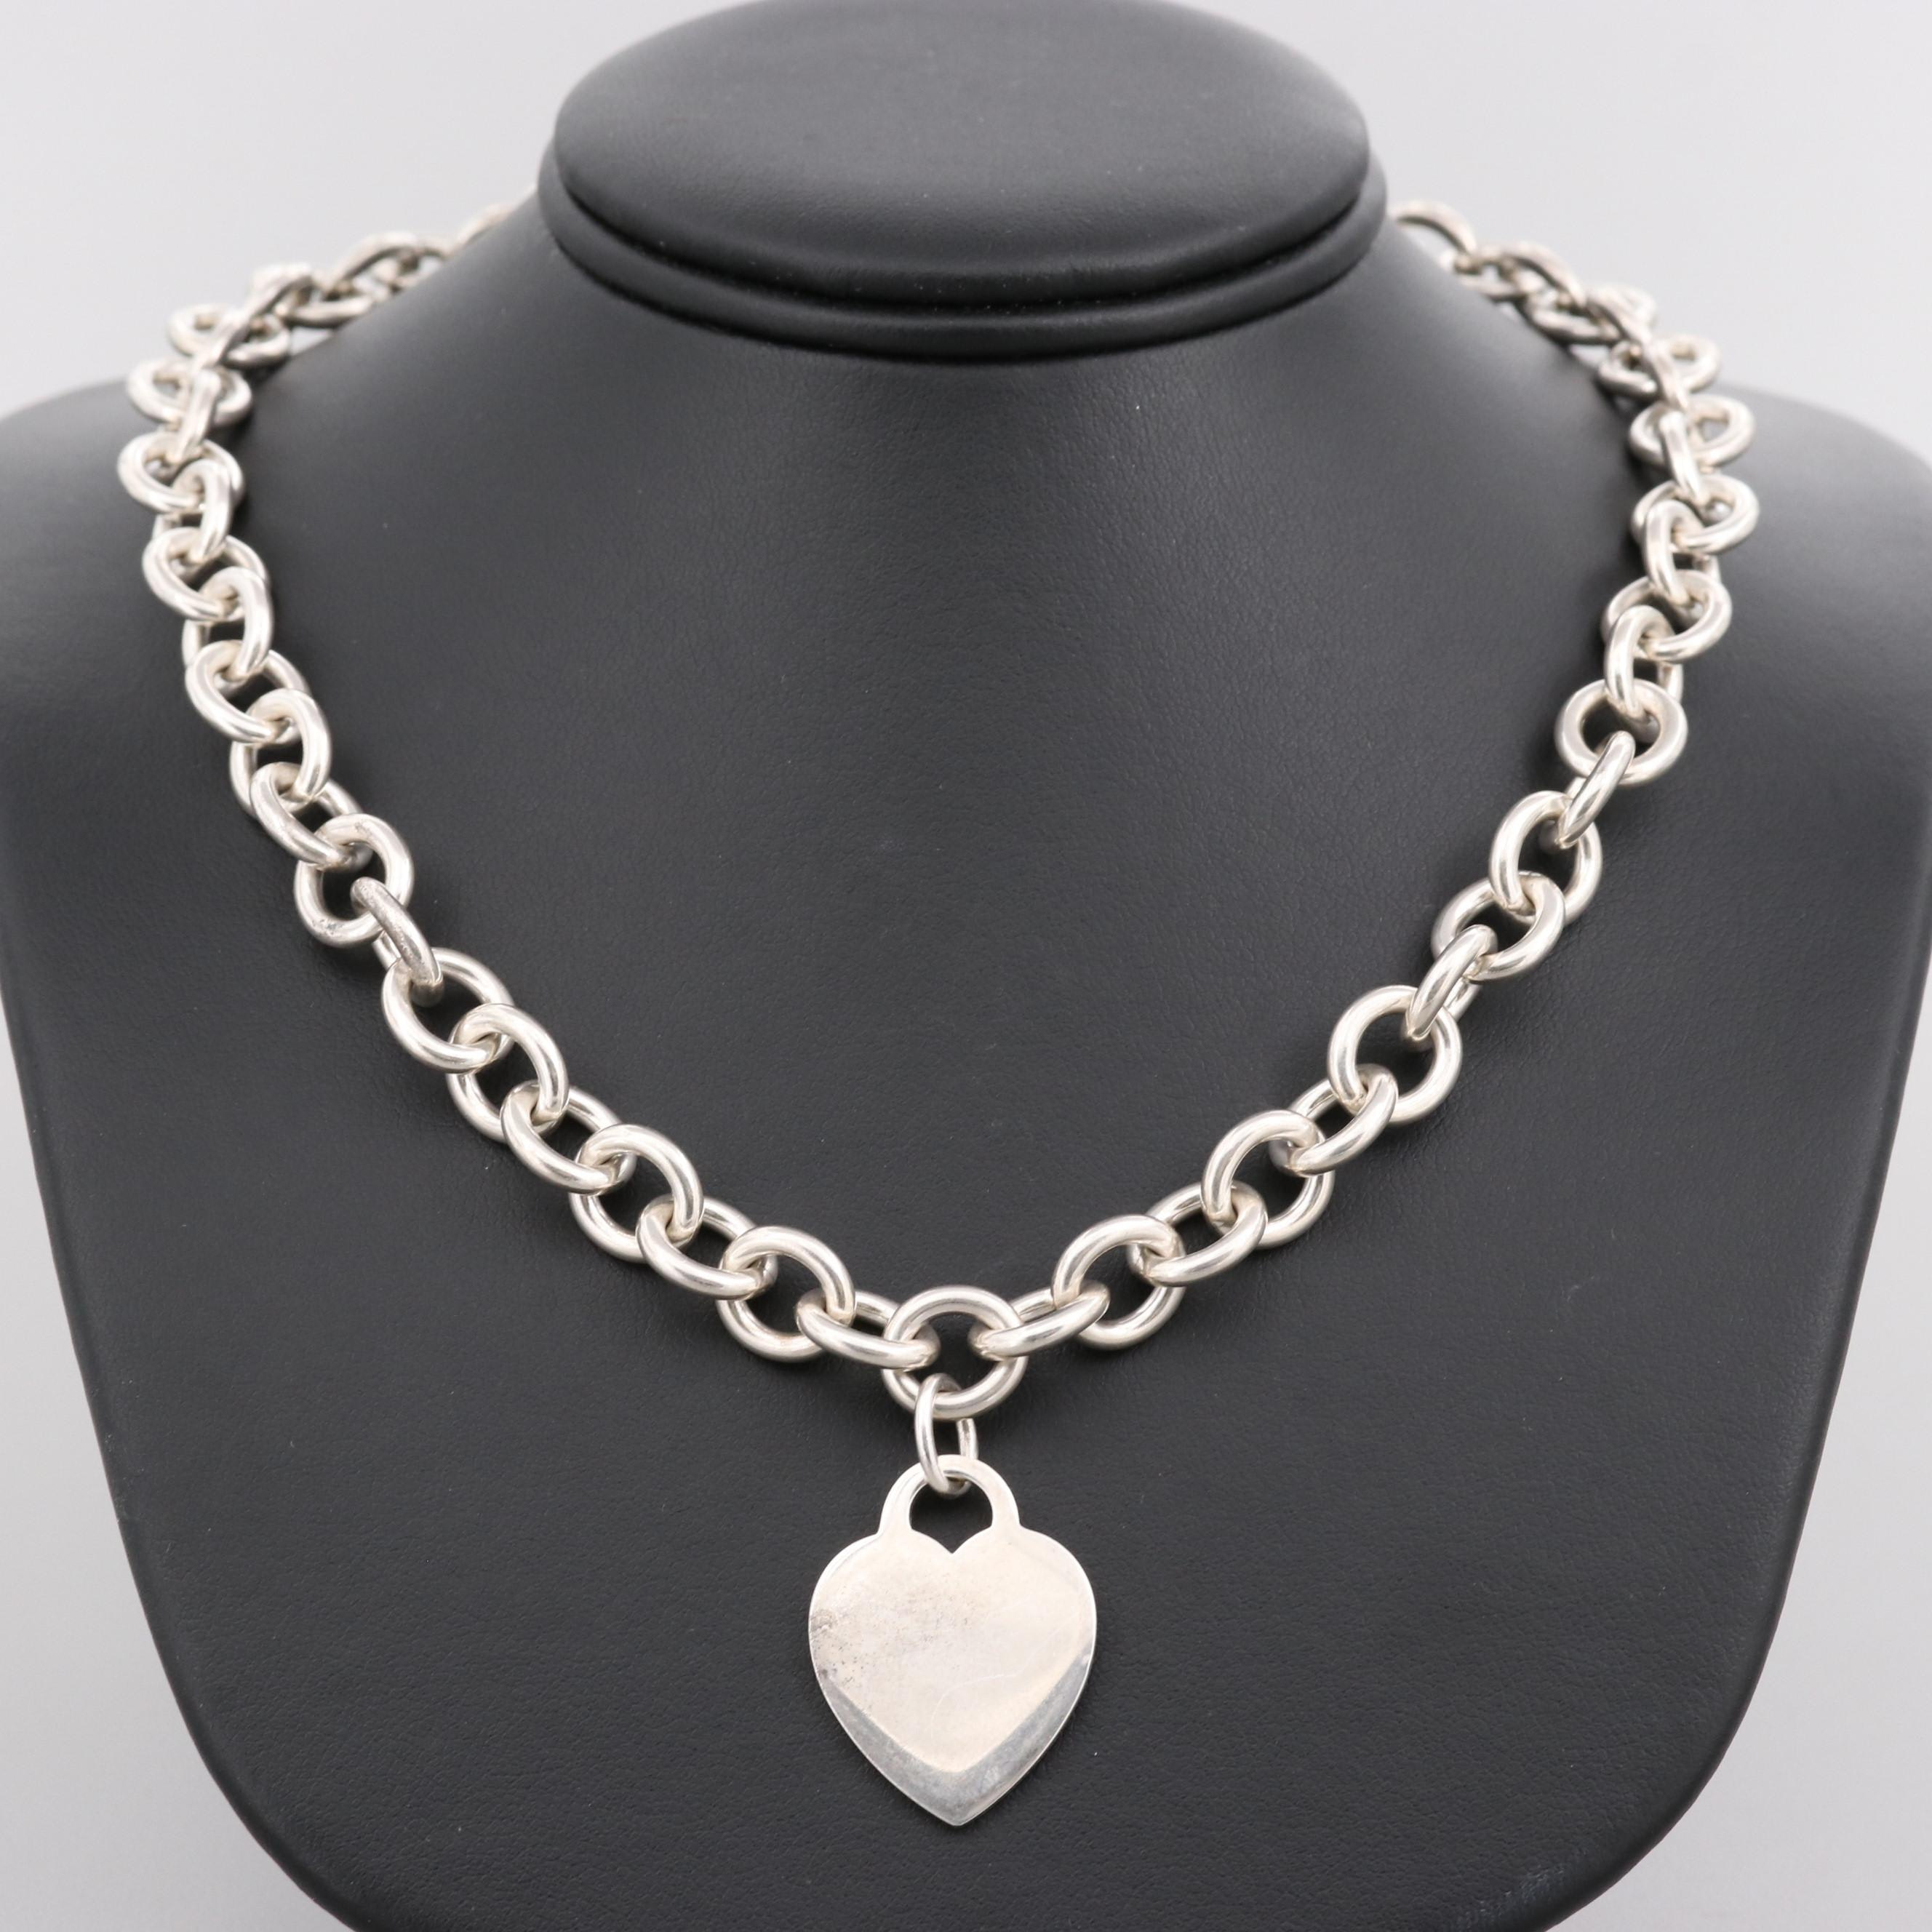 Tiffany & Co. Sterling Silver Heart Tag Necklace